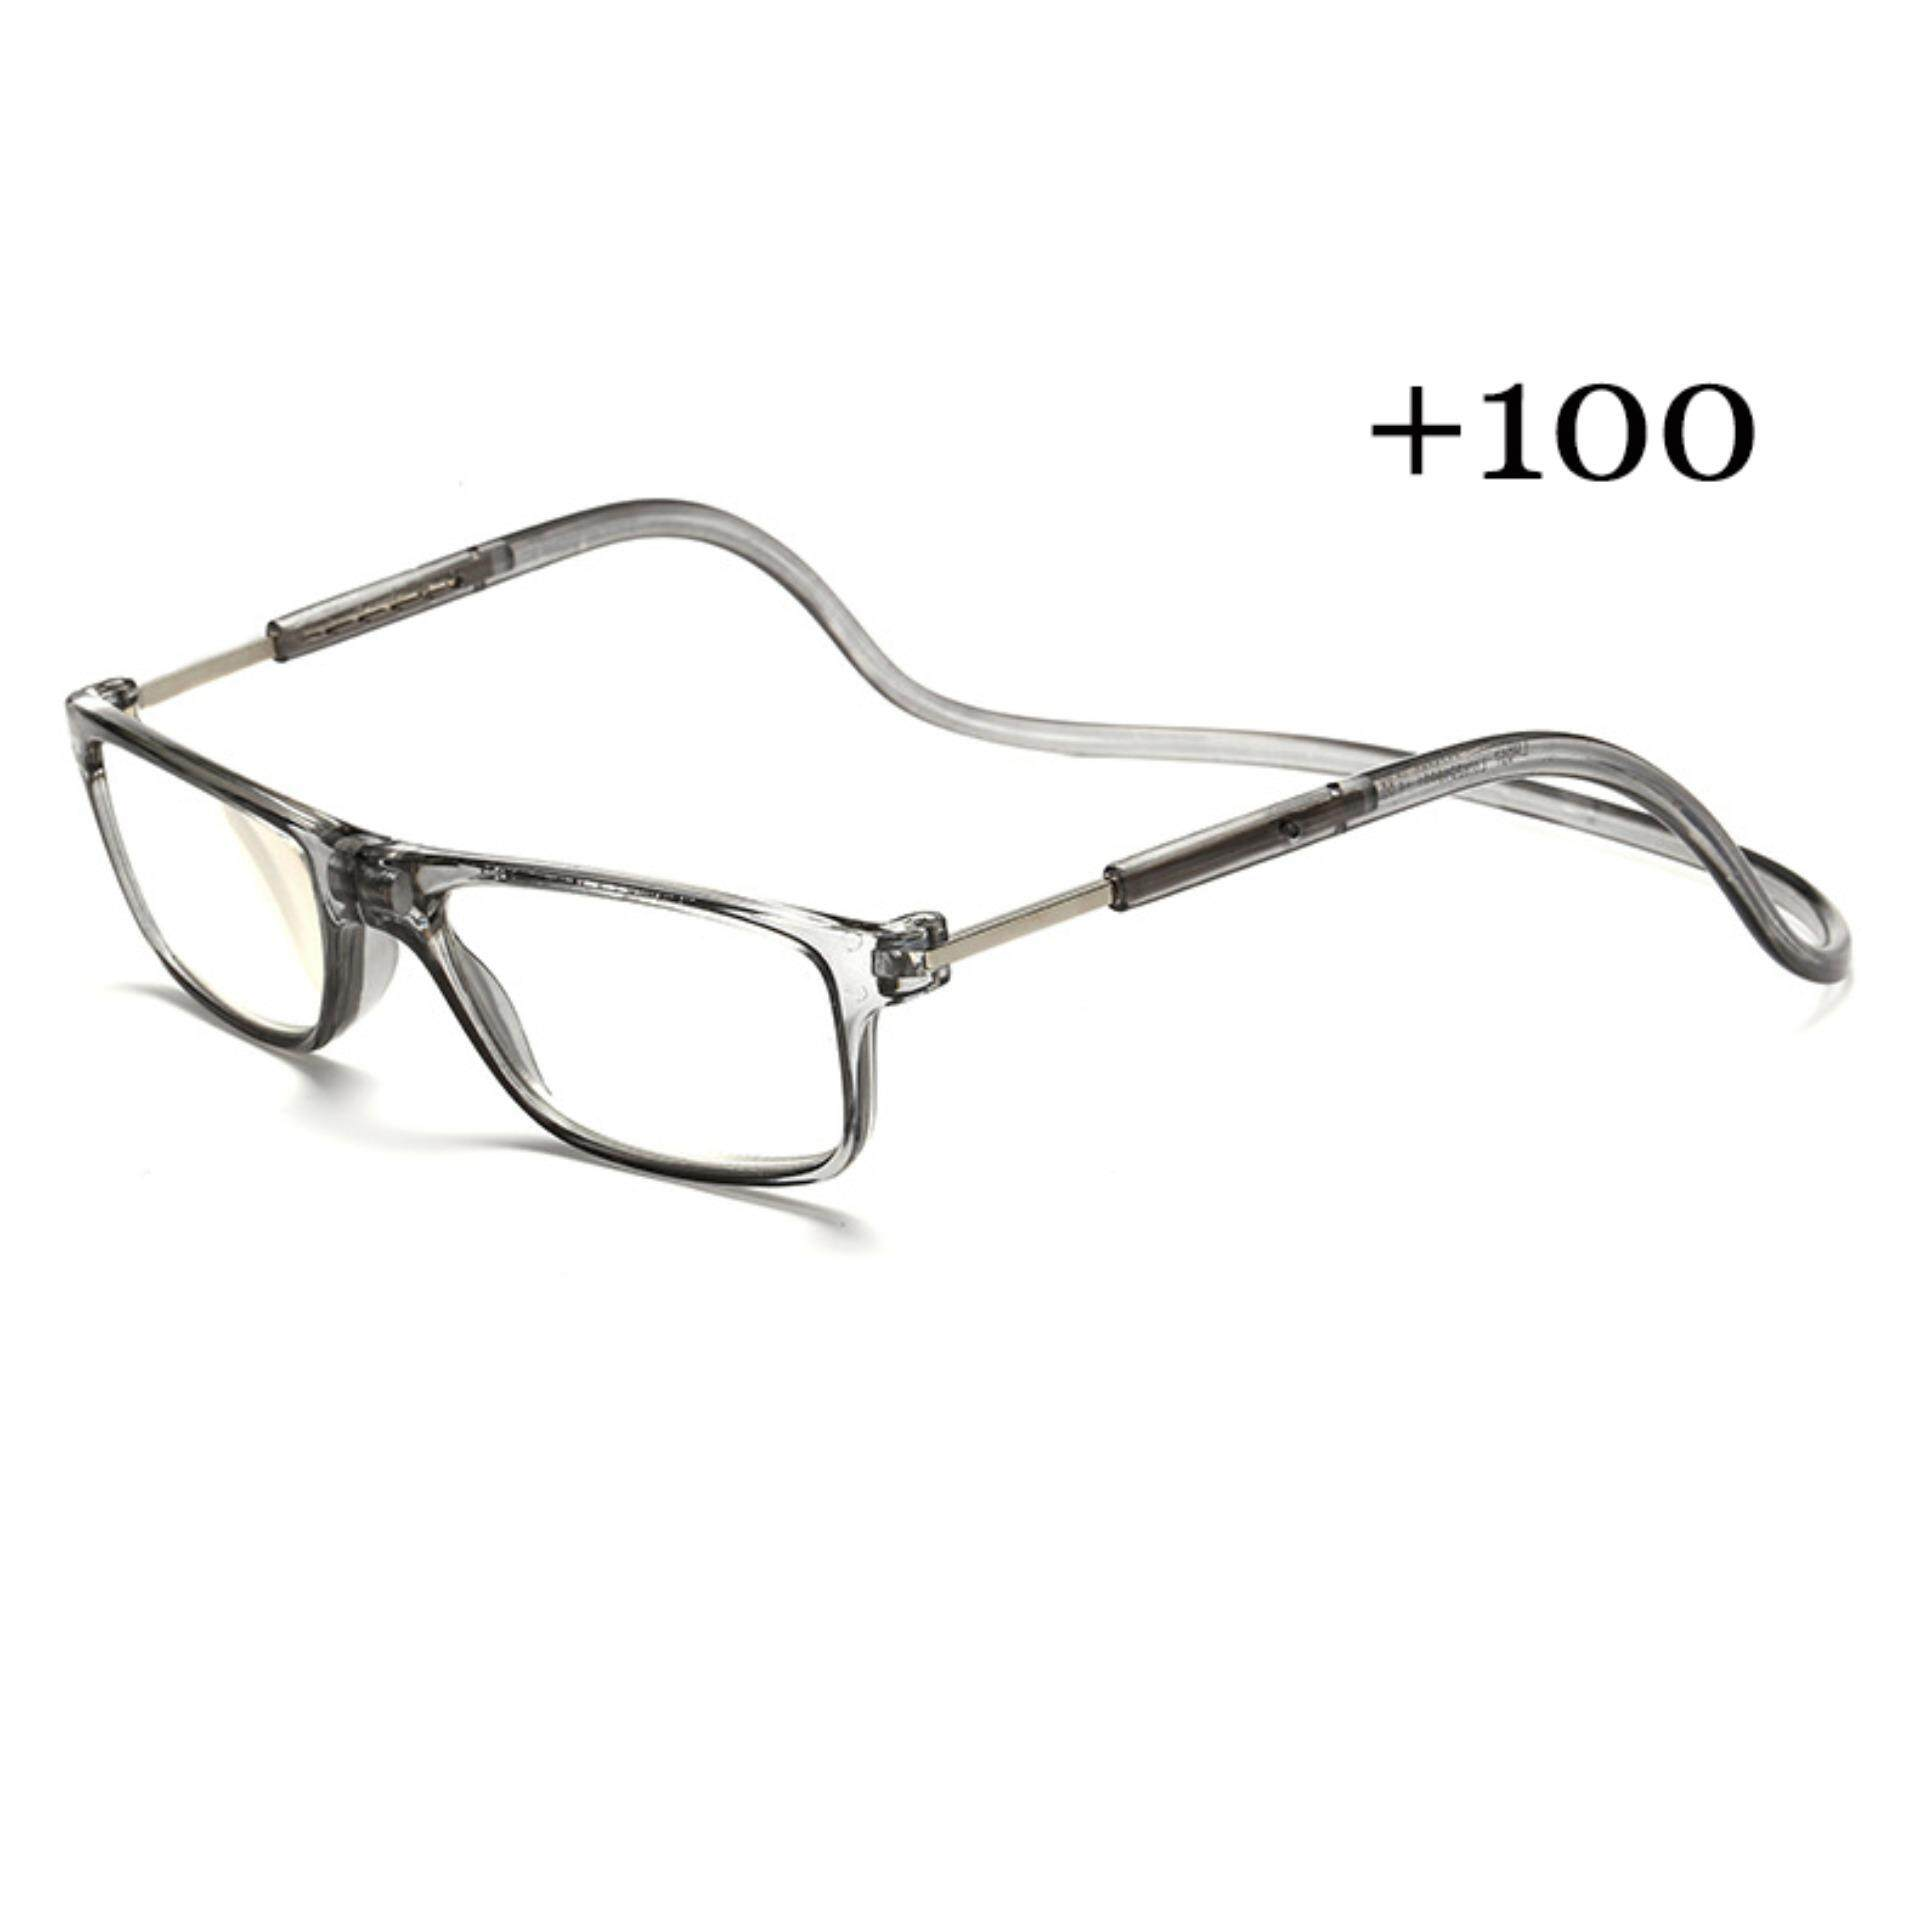 4c0b8a8383e Magnetic Reading Glasses Click Adjustable Reading Eyeglasses Hanging Rim  Grey 100